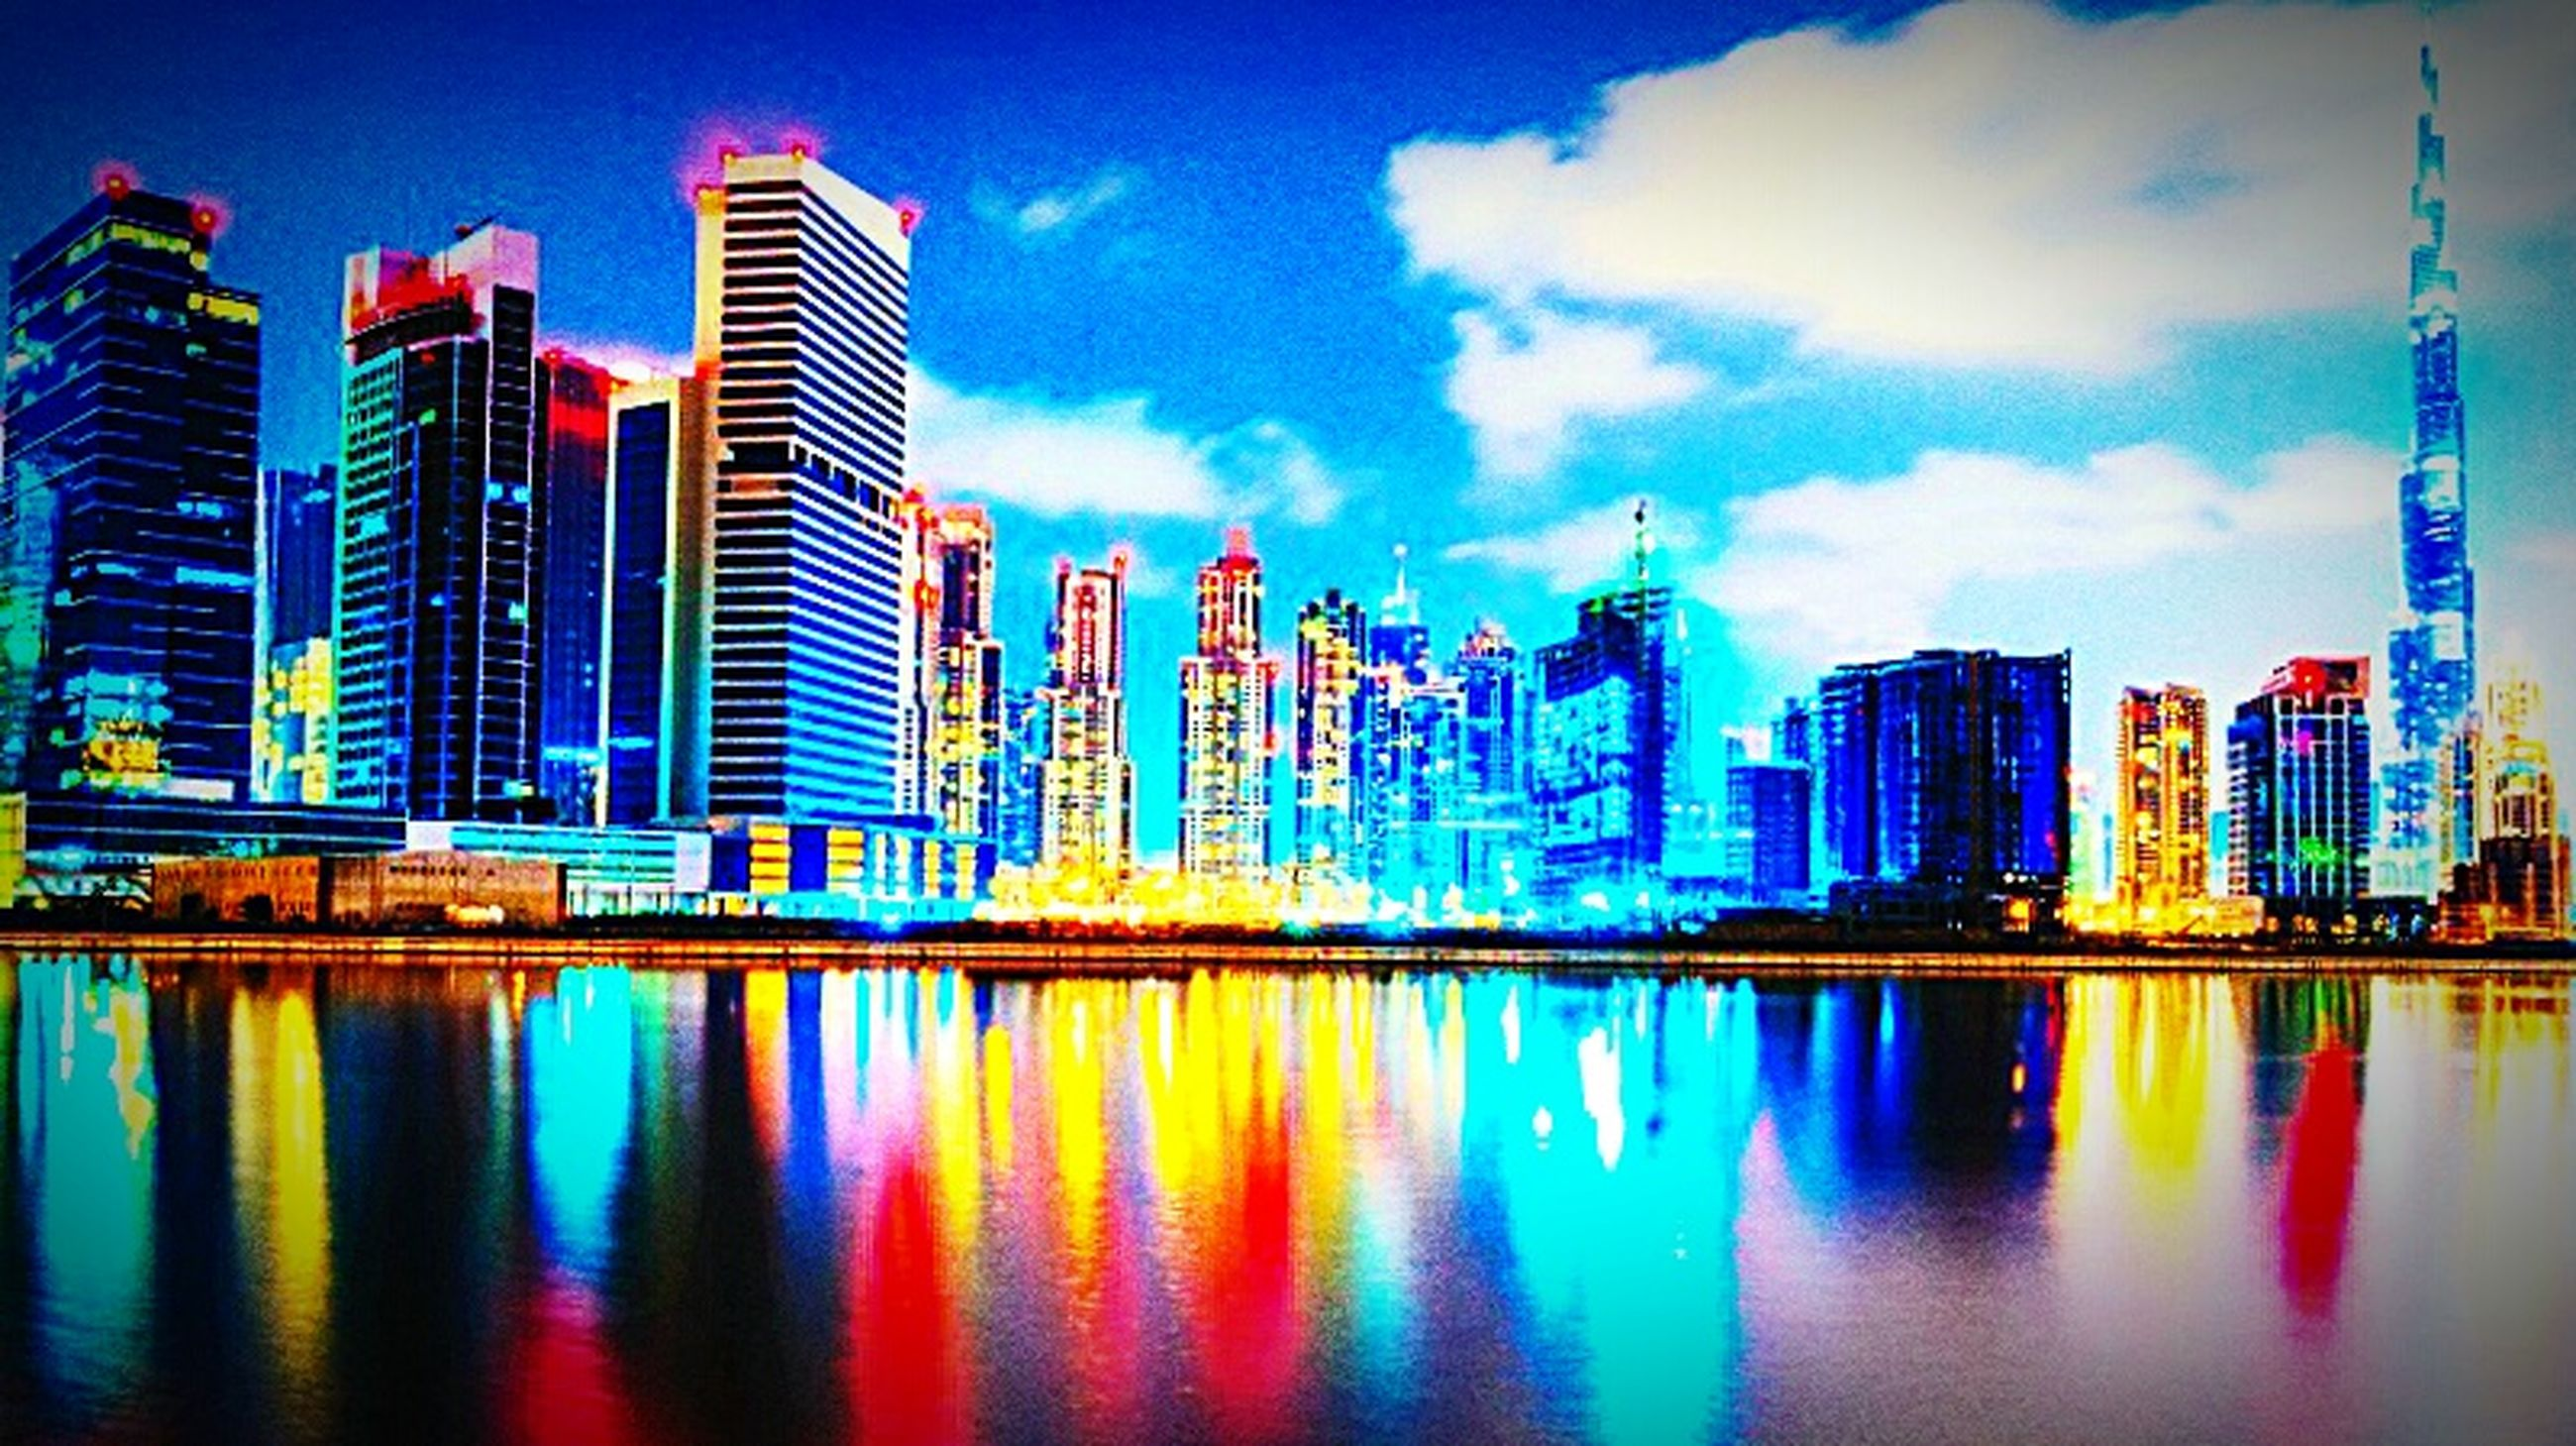 architecture, city, water, building exterior, waterfront, built structure, reflection, sky, skyscraper, multi colored, tall, building story, blue, tall - high, cityscape, river, growth, modern, illuminated, tower, urban skyline, calm, cloud, water surface, office building, sea, financial district, urban scene, city life, cloud - sky, tranquility, development